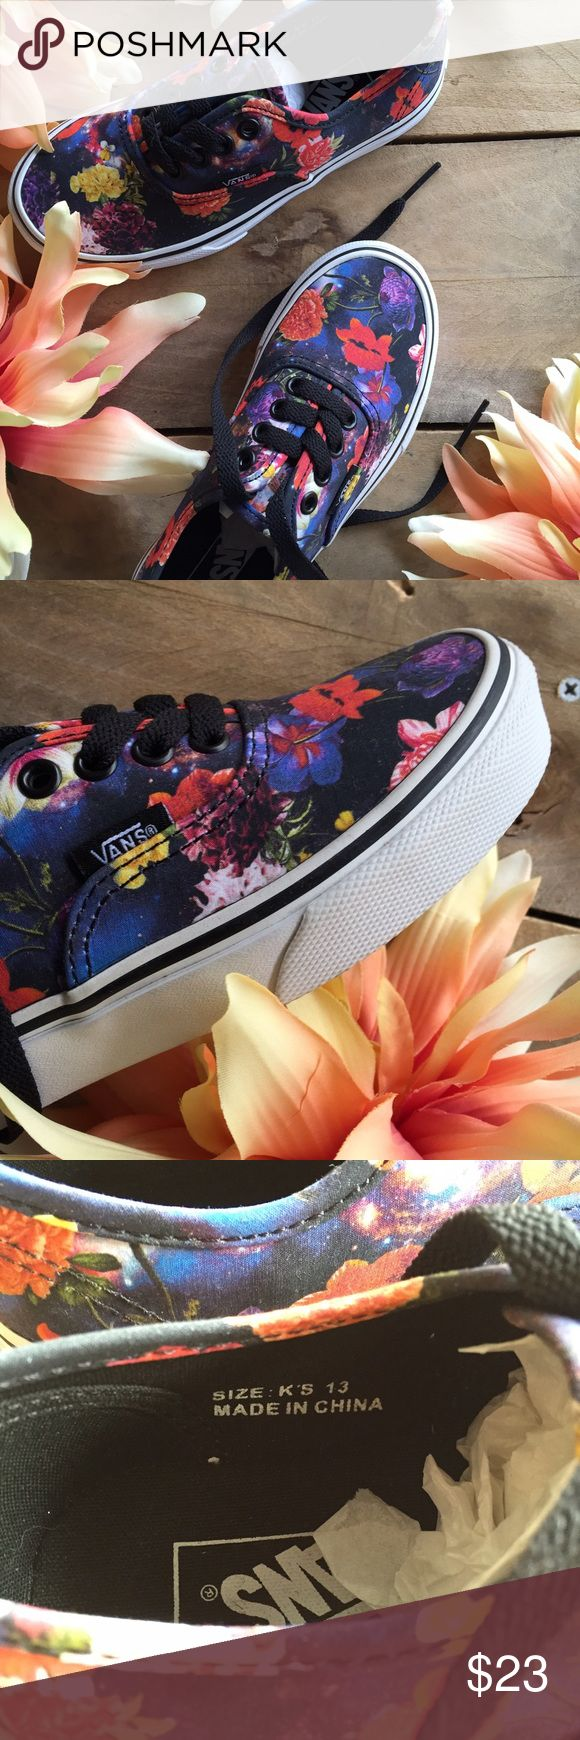 Girls Vans Shoes NWOT Girls, size 13. Brand New. Vans Kids galaxy Floral authentic. Cute, stylish galaxy floral print. Perfect for summer, school days, everywhere and everyday for your little girl. Enjoy! Vans Shoes Sneakers